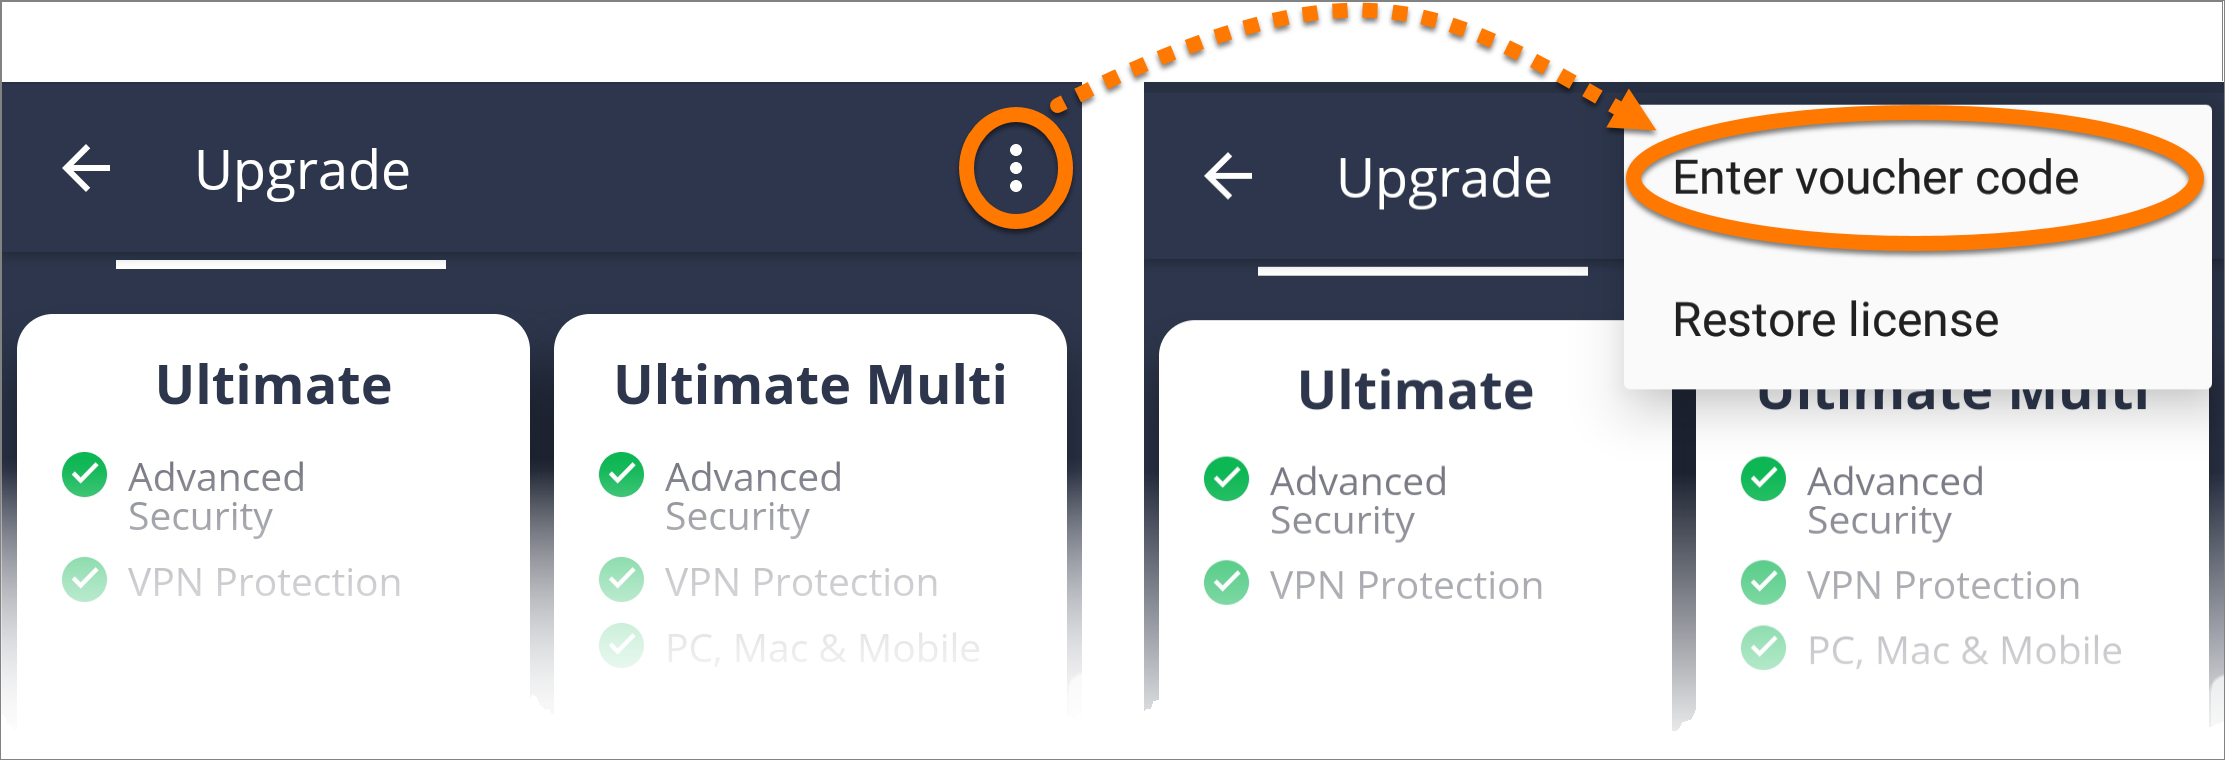 avast mobile security code